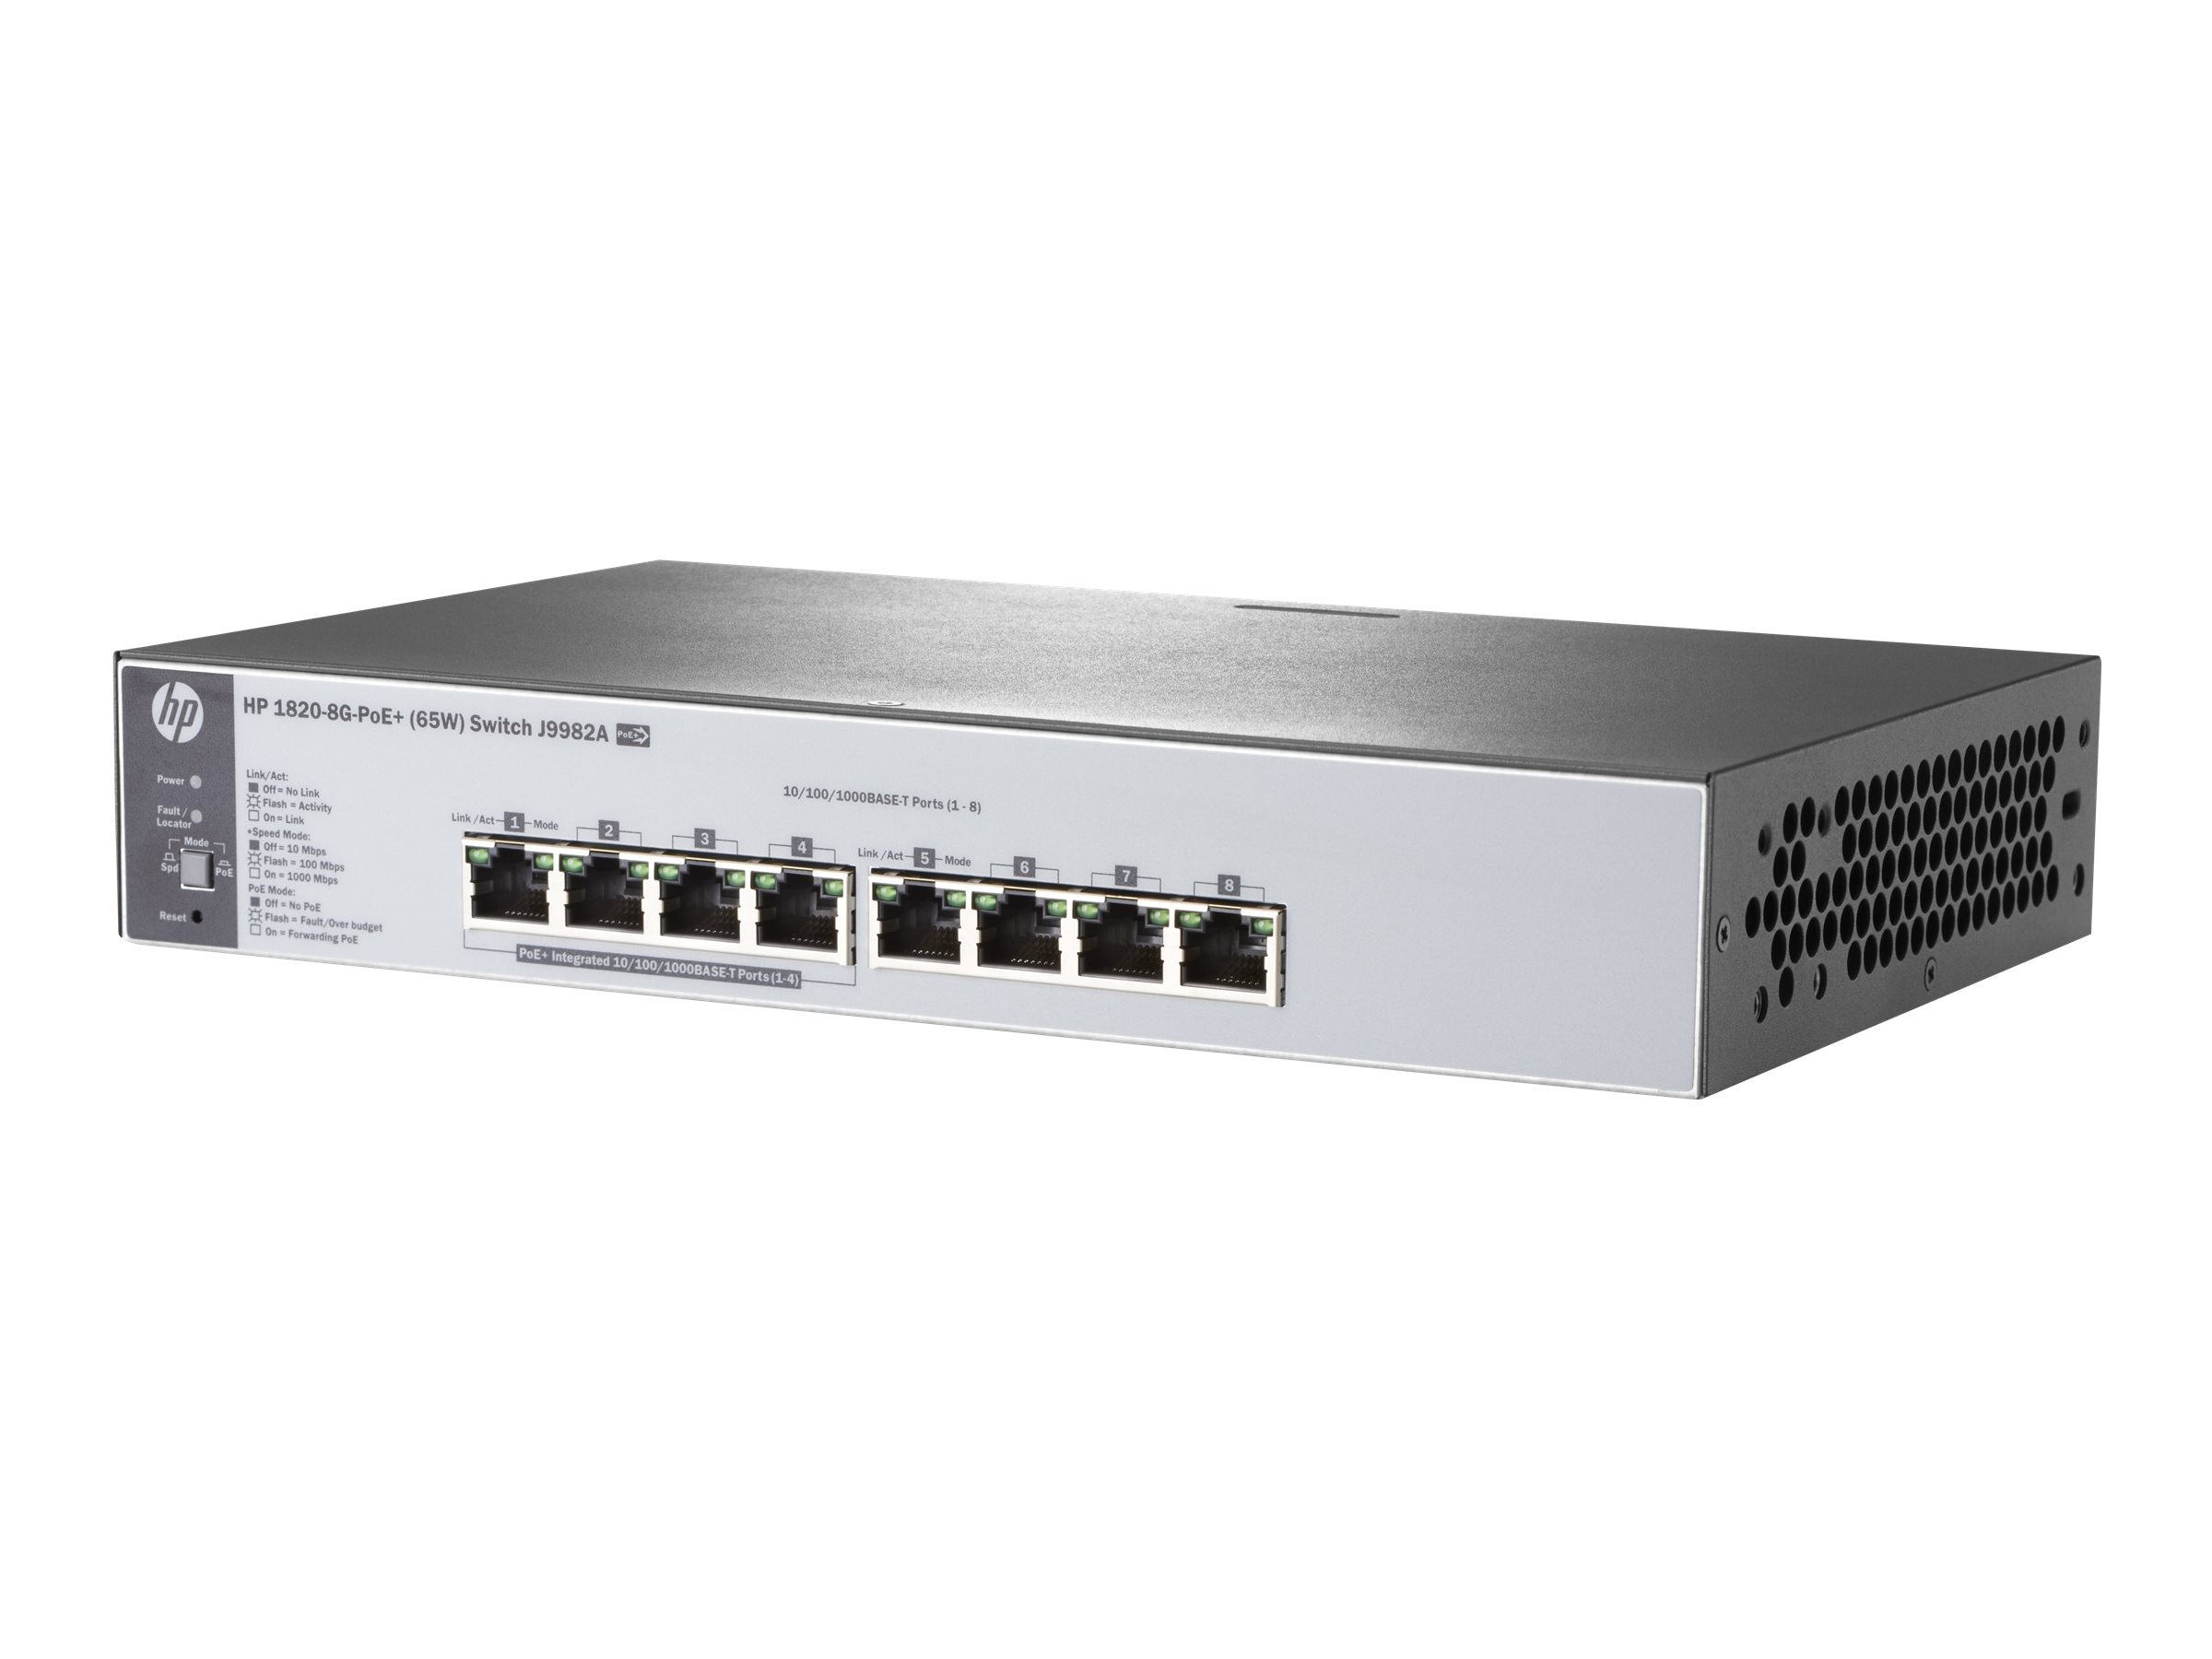 HP Enterprise 1820-8G-PoE+ (65W) - Switch